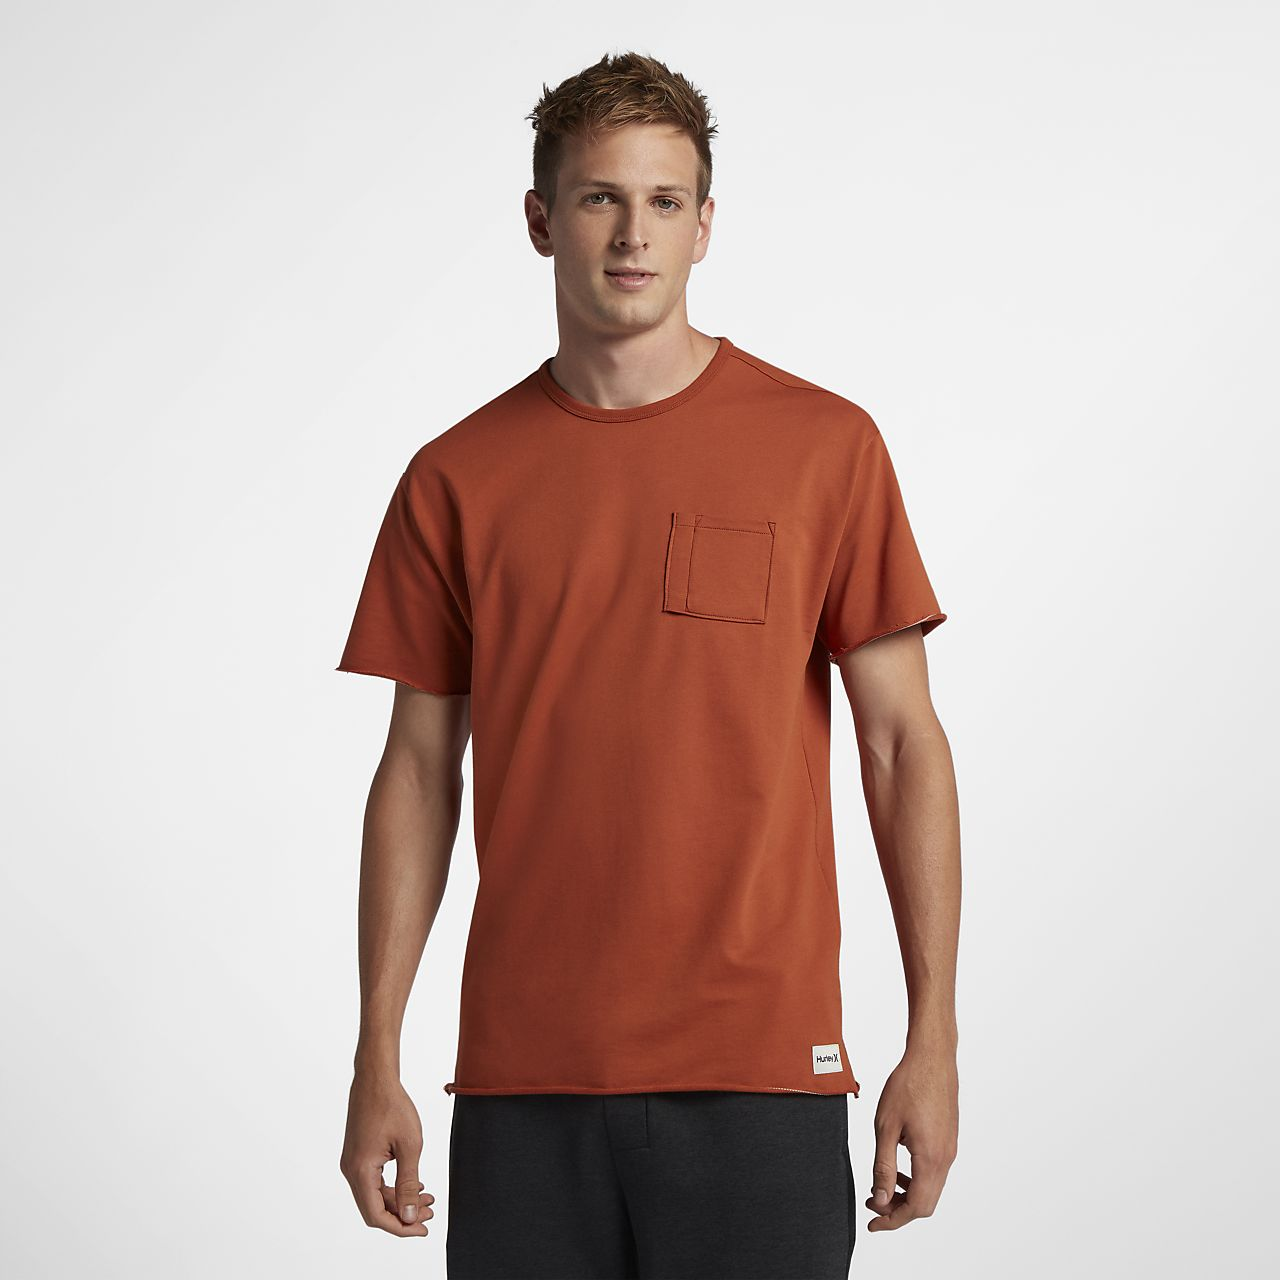 Tee-shirt Hurley L7 Pocket Crew pour Homme